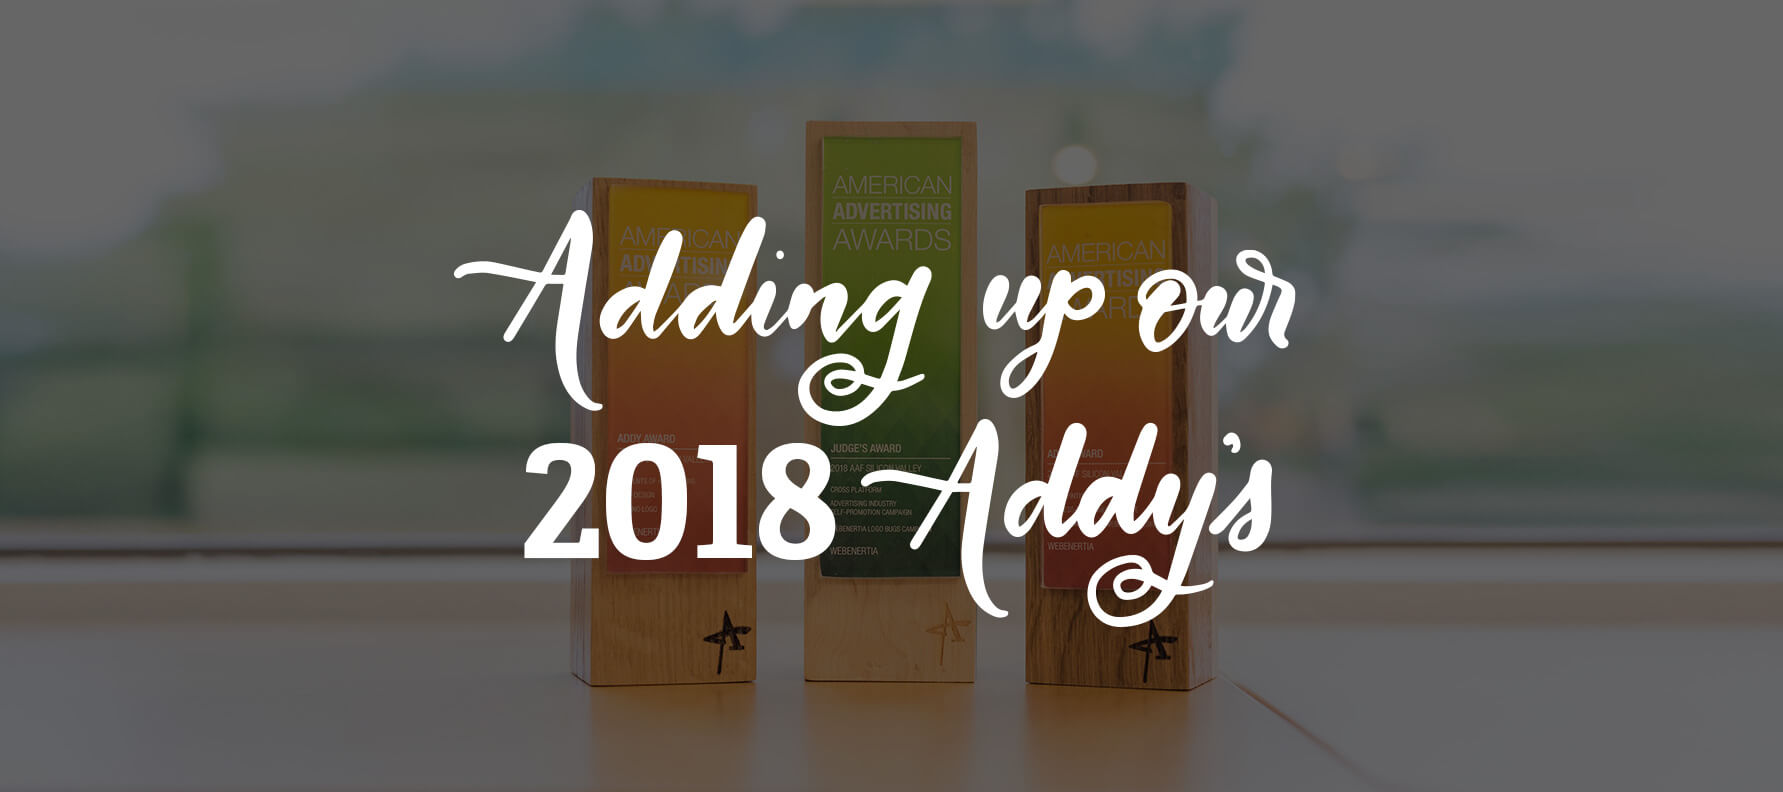 Adding Up Our 2018 Addys